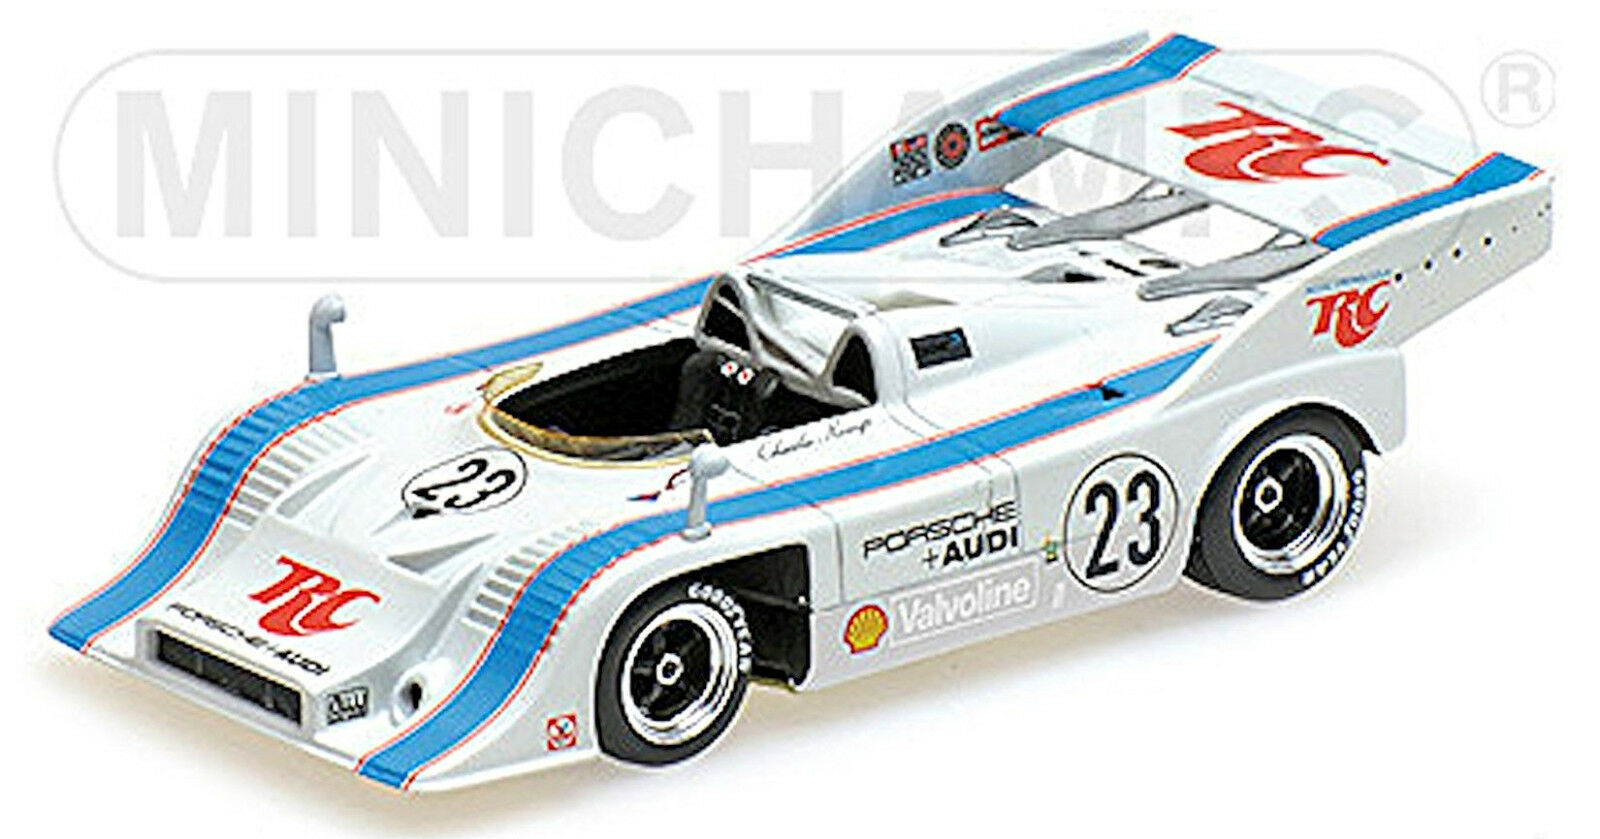 Porsche 917 10 Rinzler Racing Ganador Can Am Mosport 1973  23 1 43 Minichamps